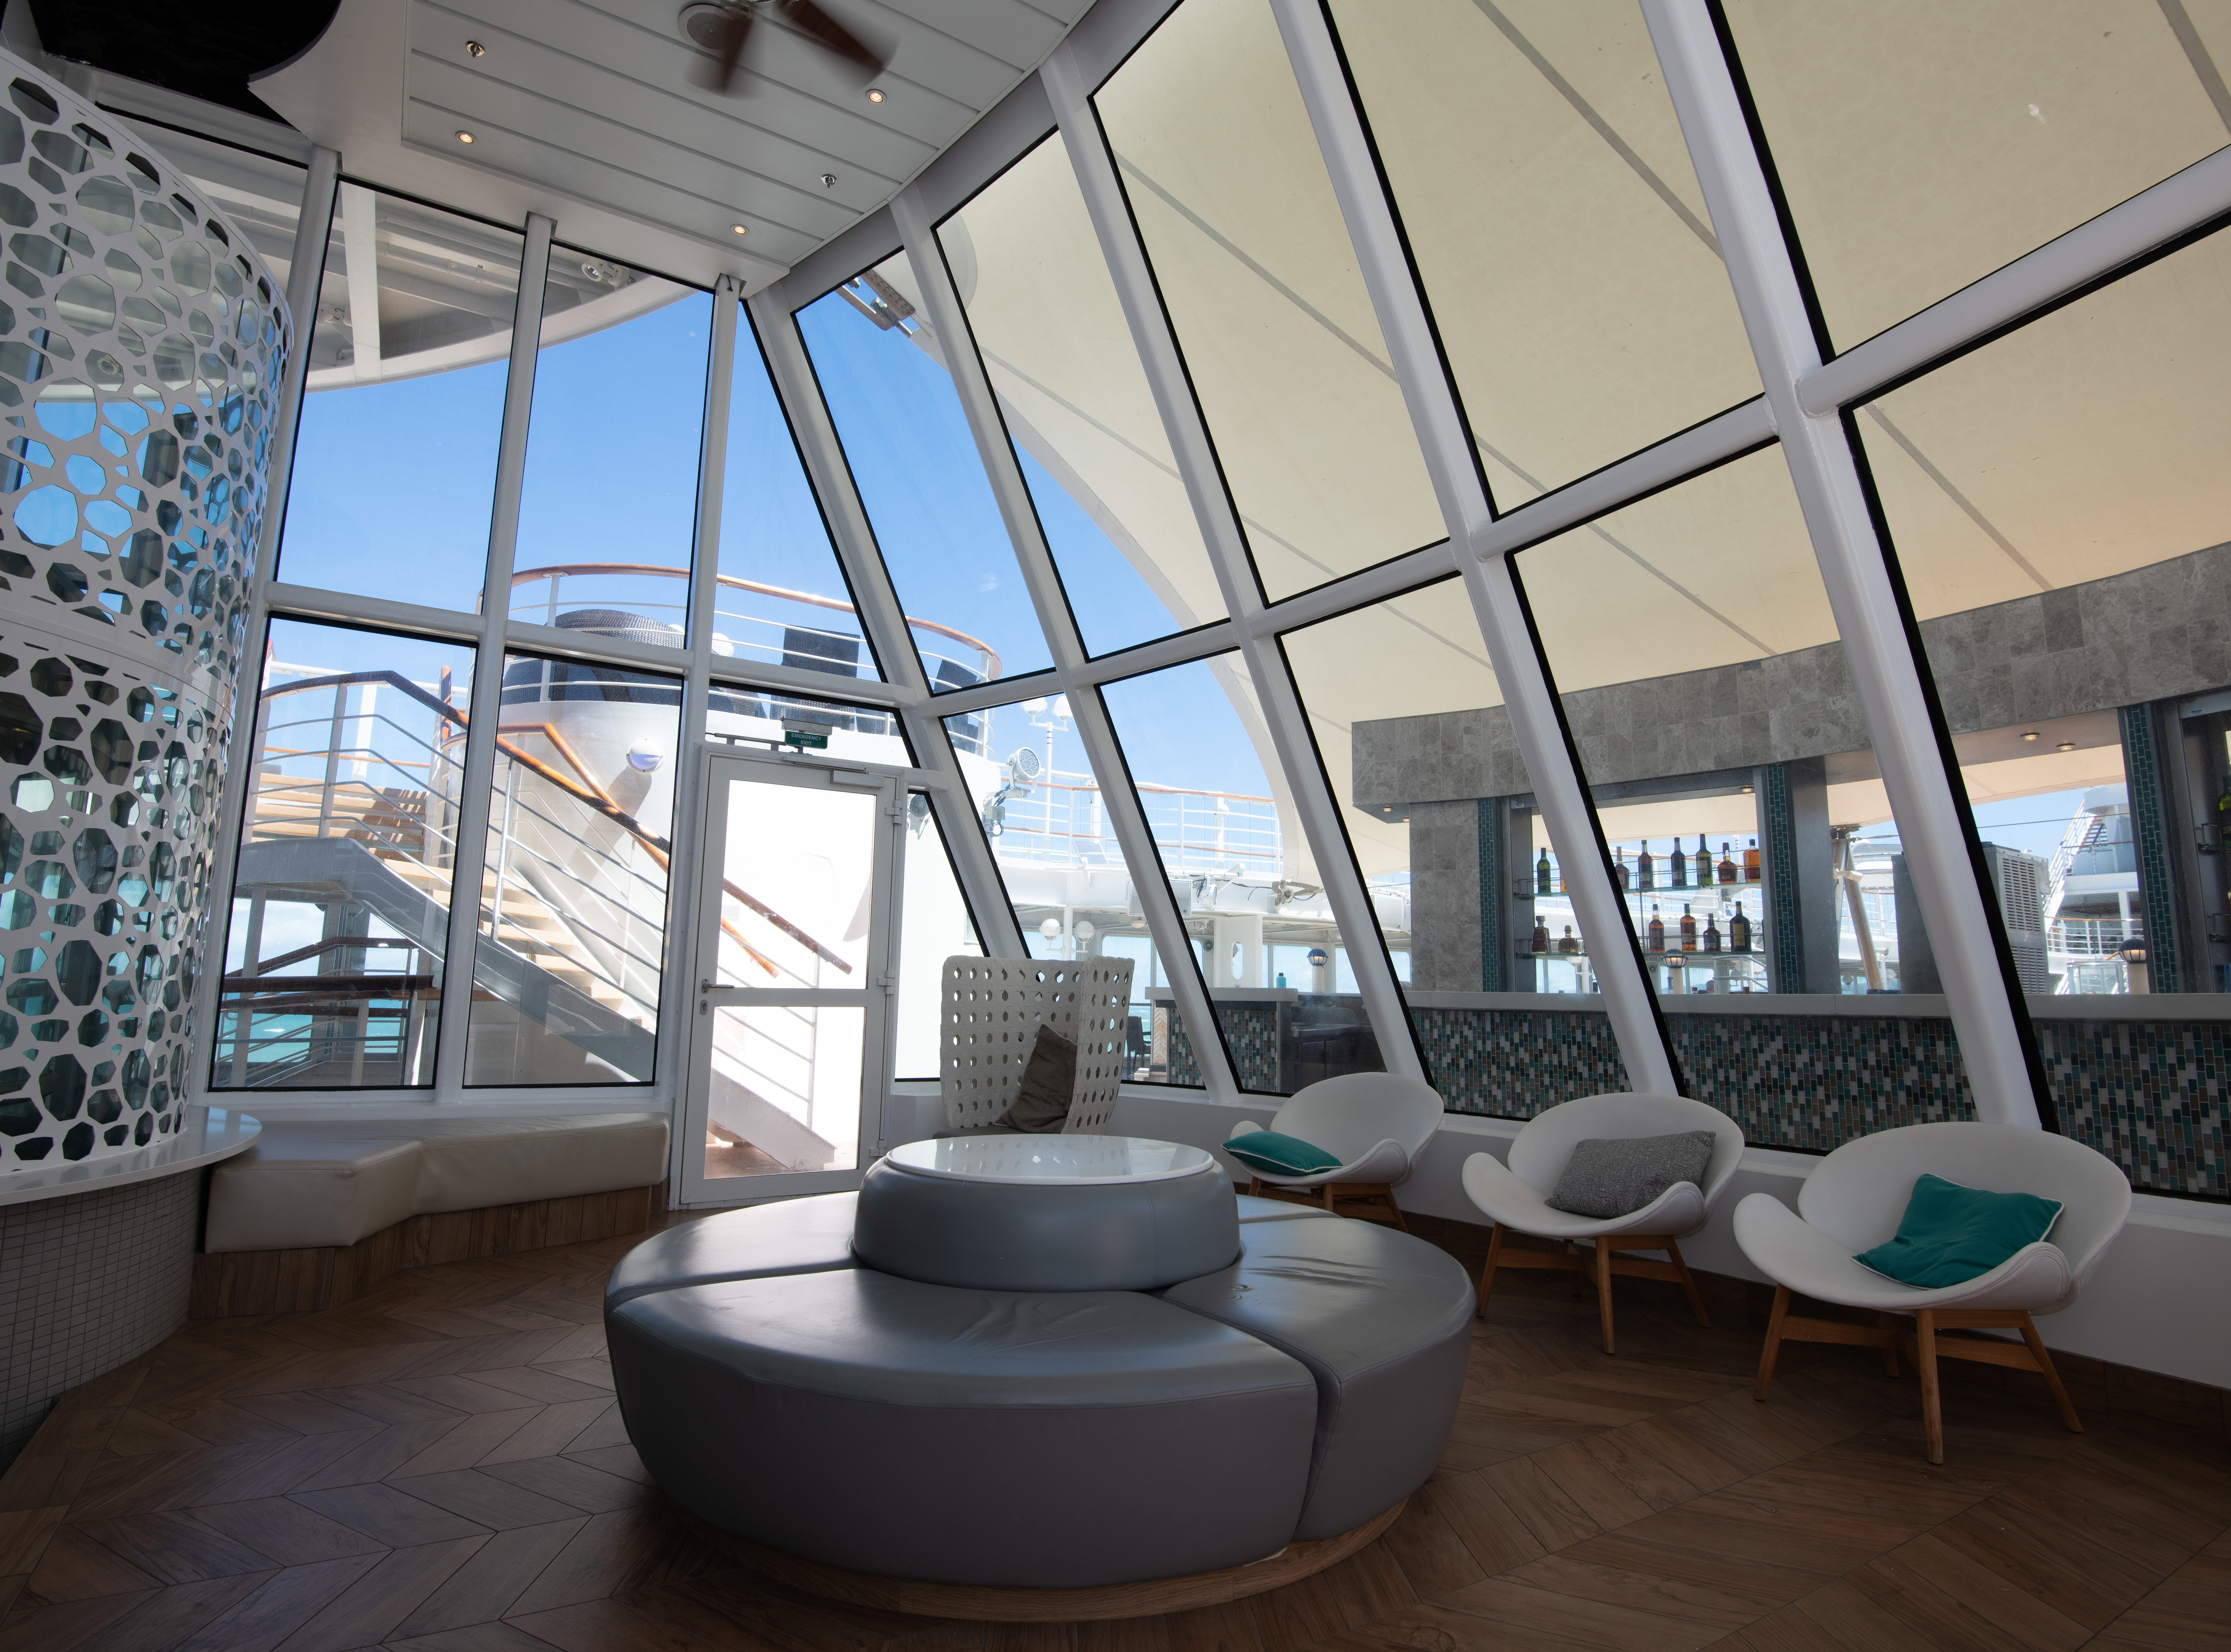 The Conservatory, on Deck 11, is a quiet, glass-enclosed space.